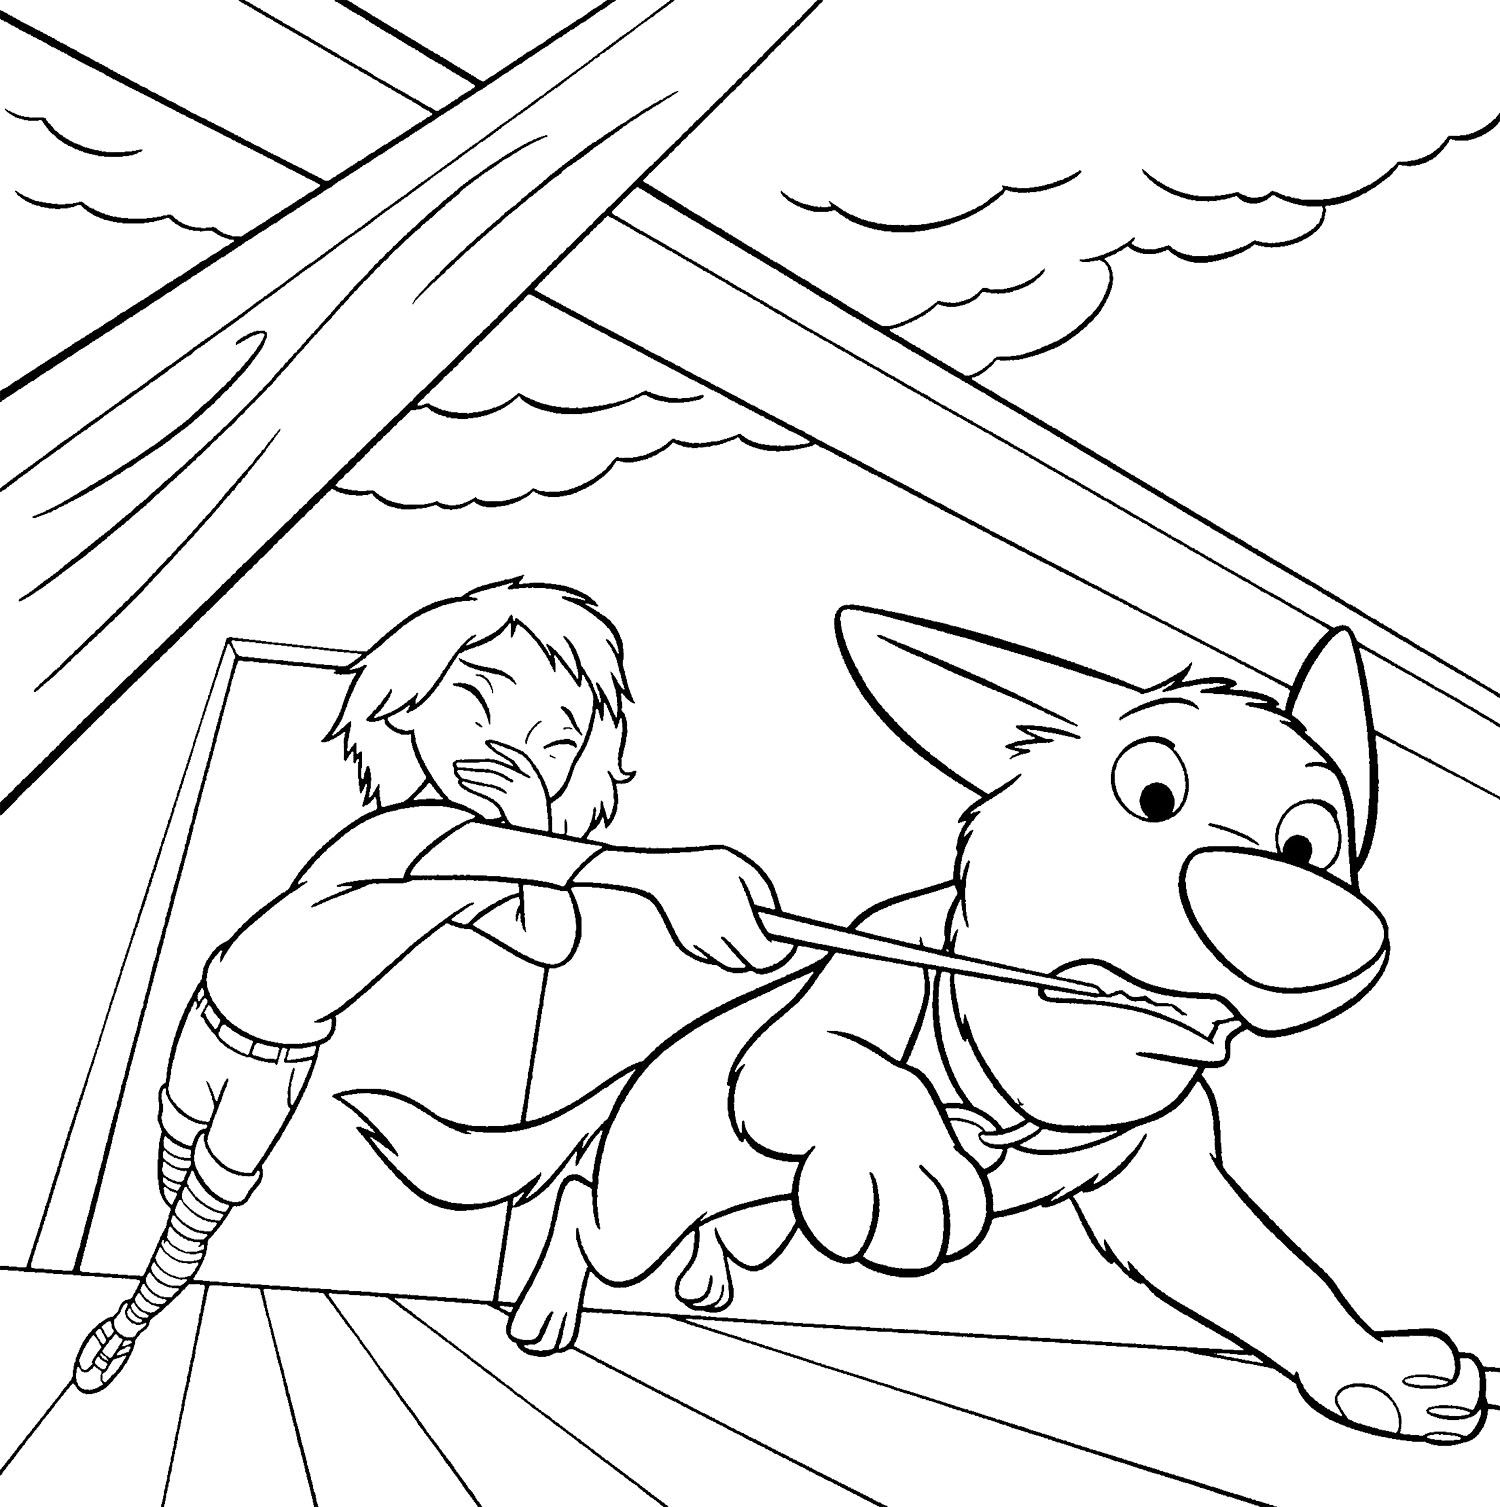 Bolt Angry Coloring Page | Disney | Pinterest